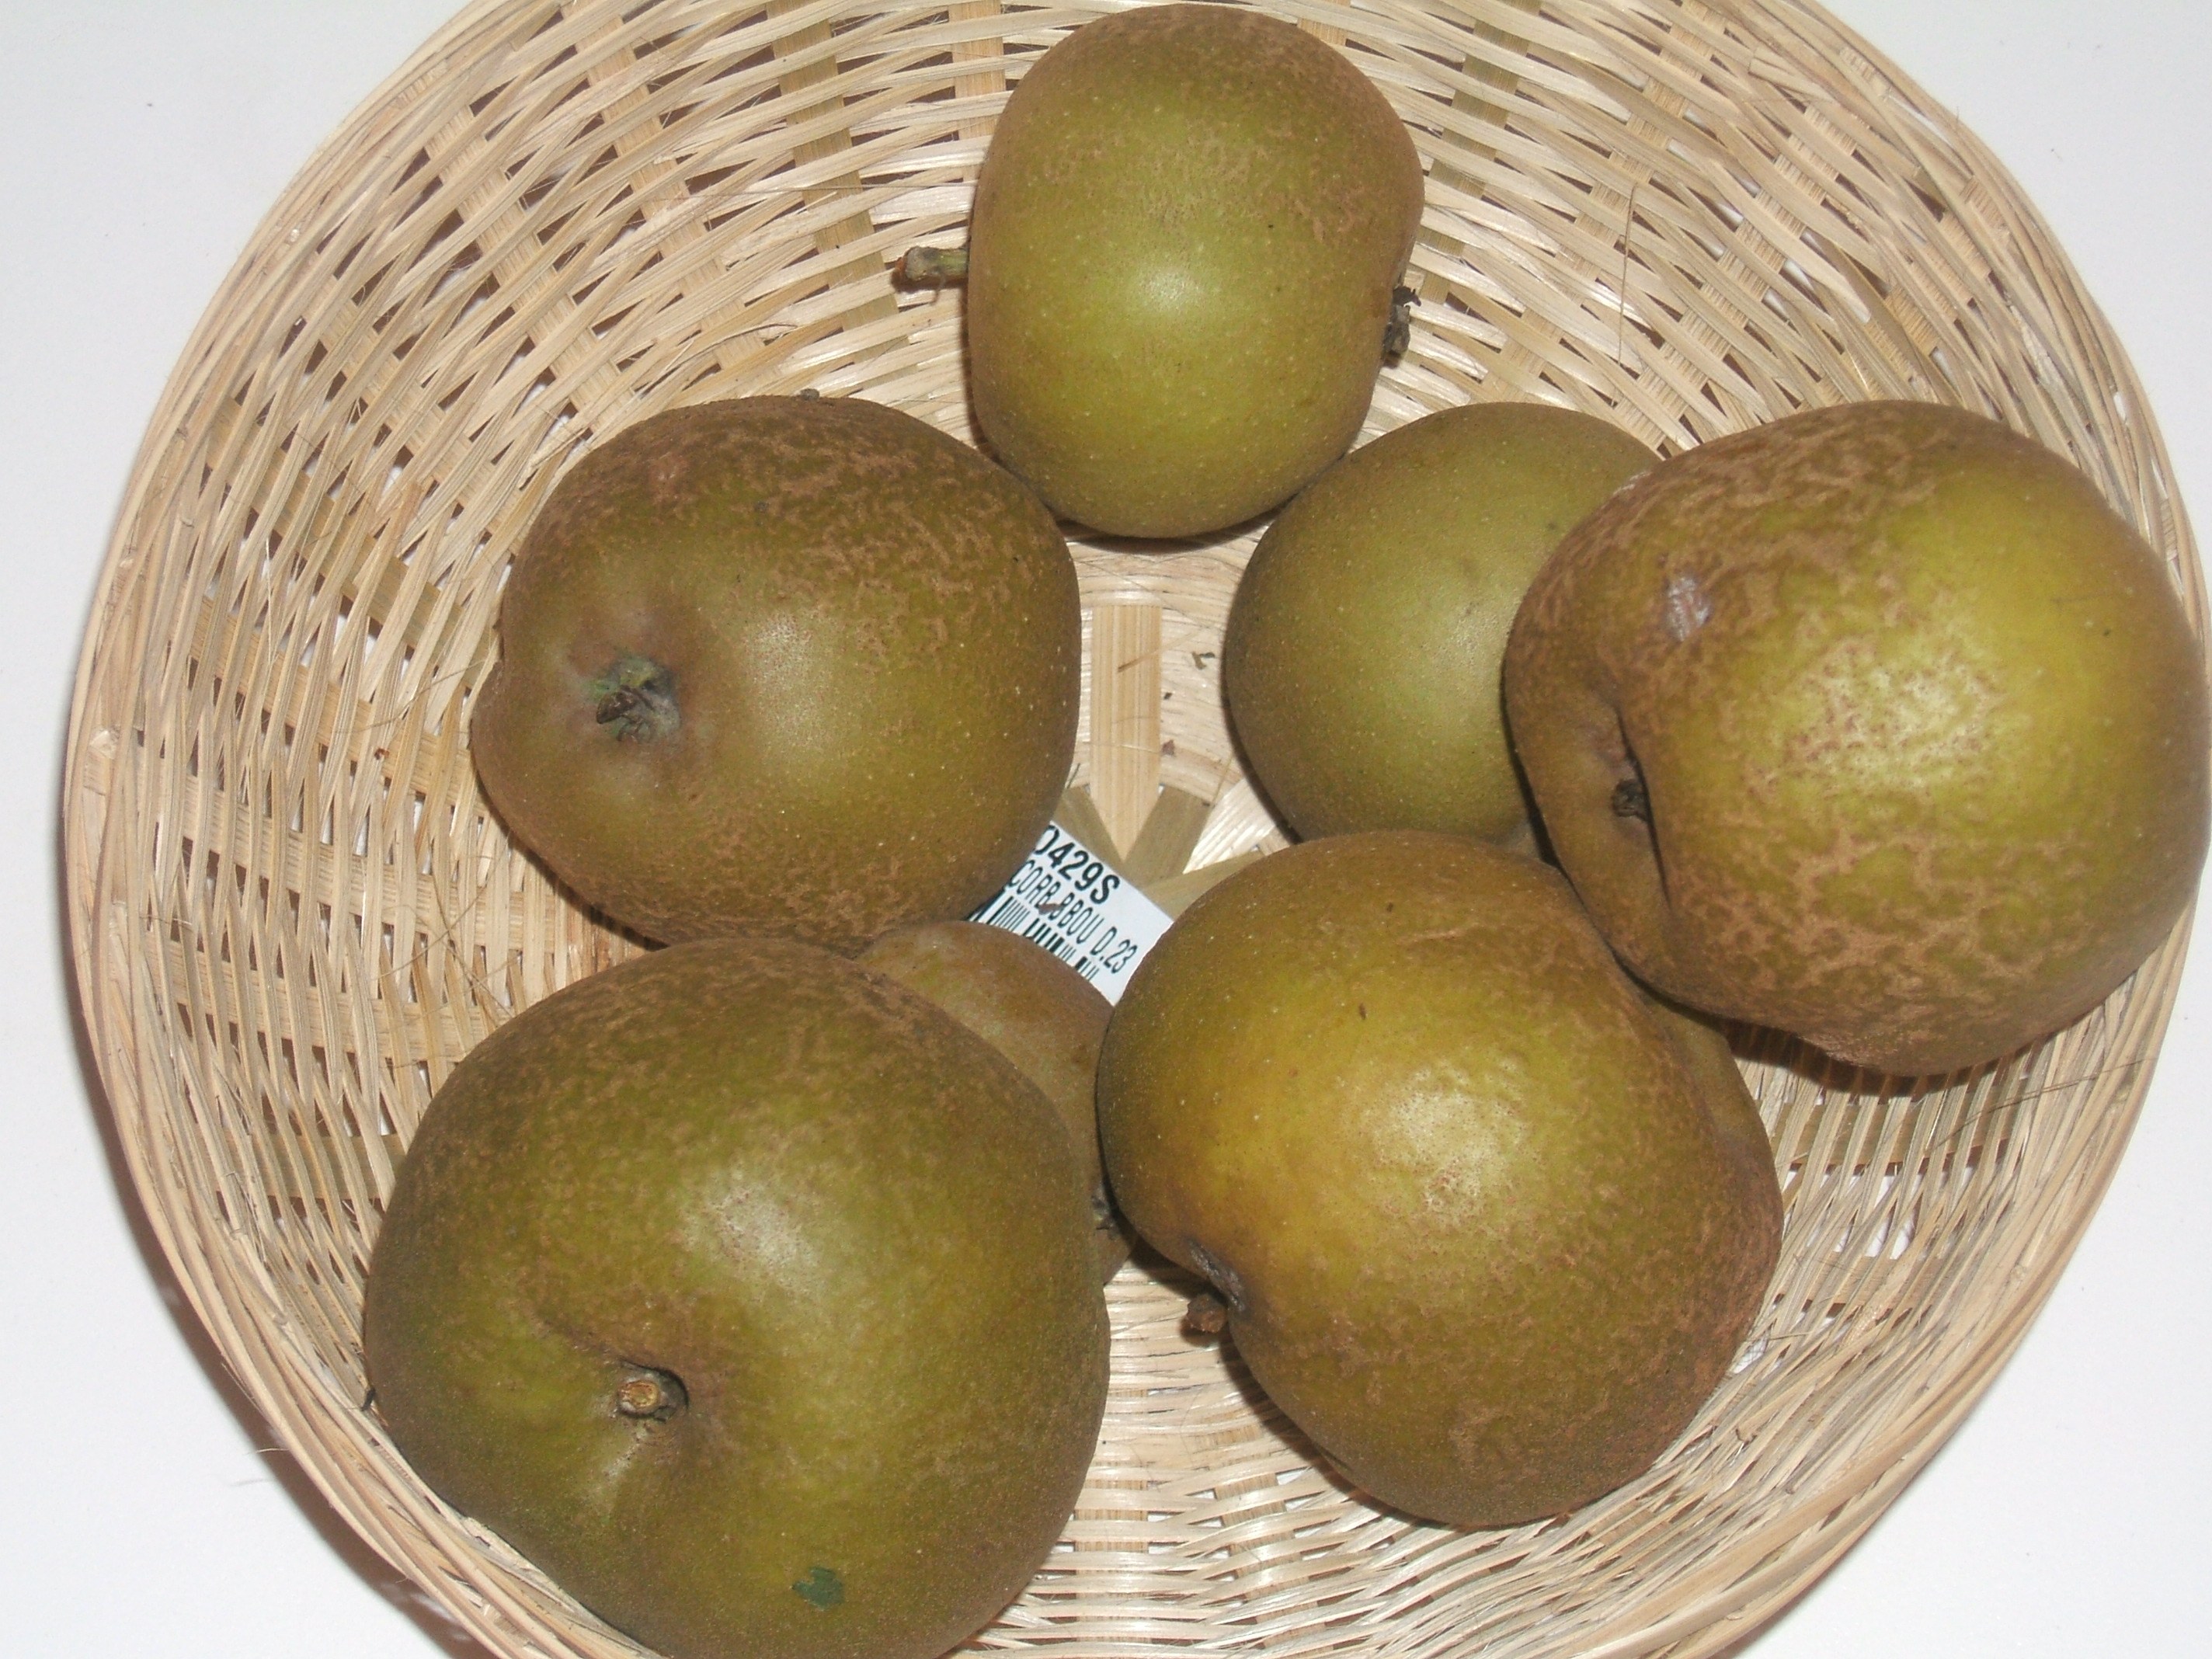 Gris Baudet (fruit).